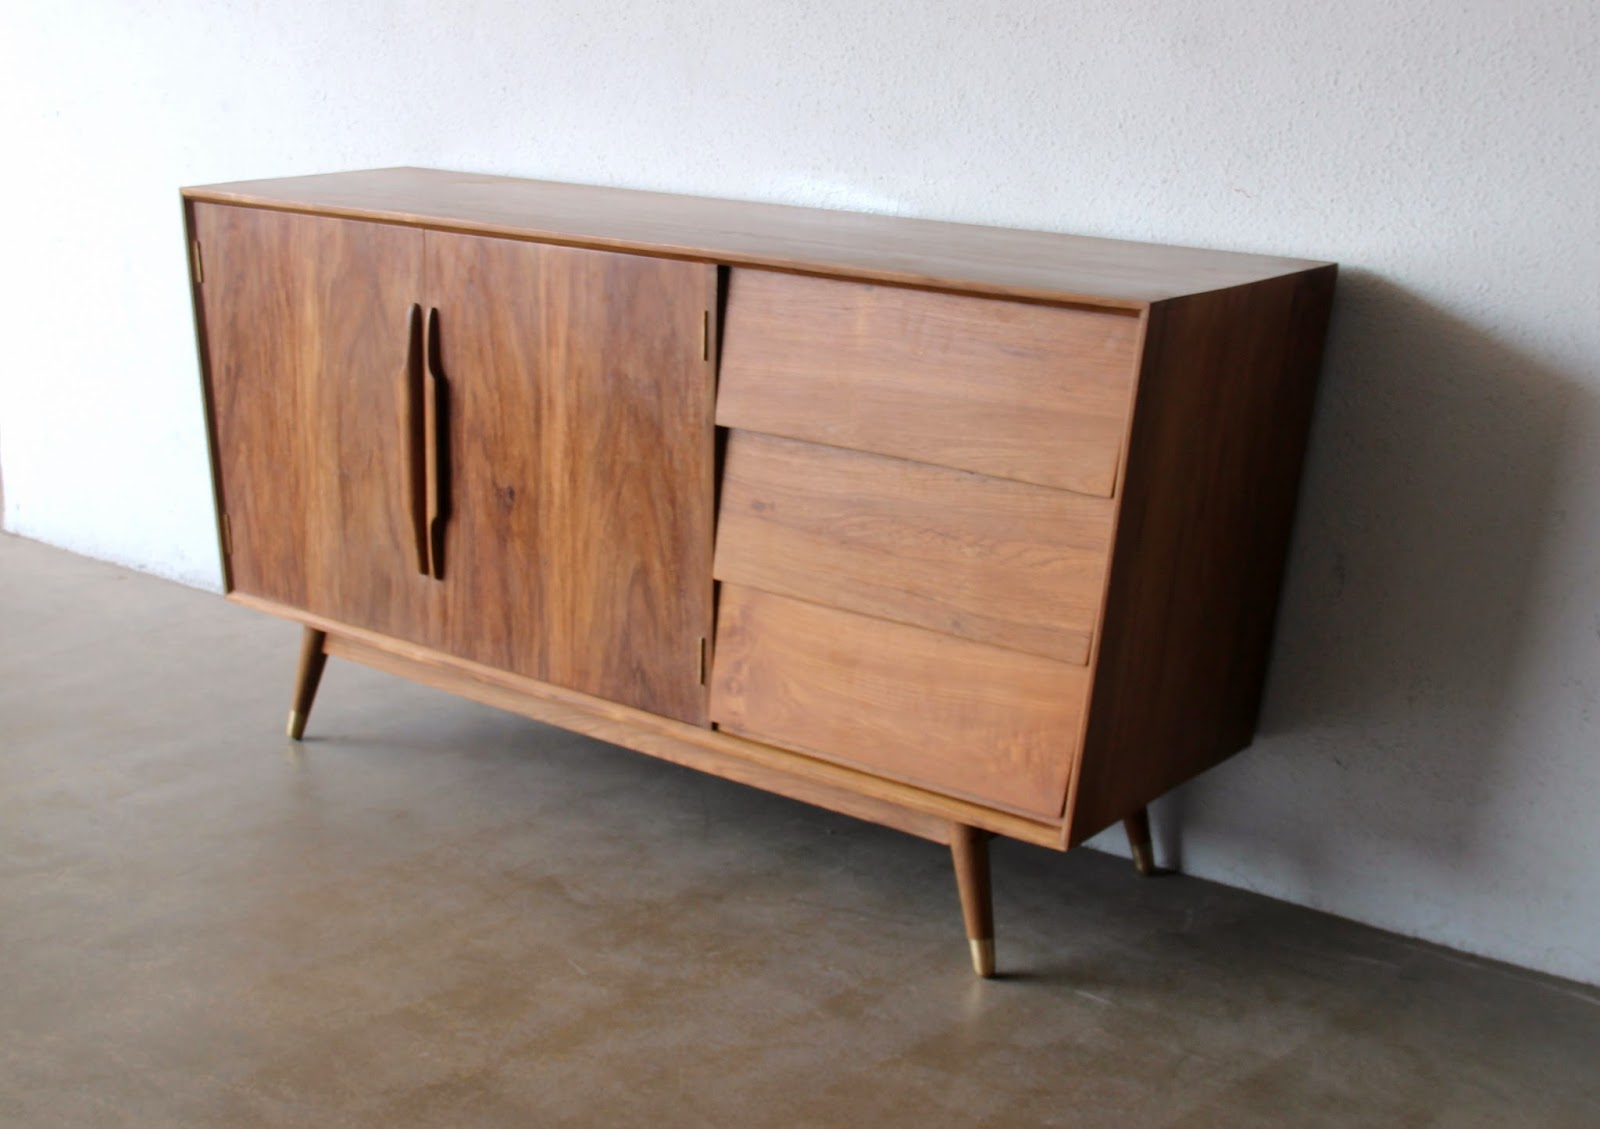 SECOND CHARM FURNITURE   MID CENTURY MODERN INFLUENCE